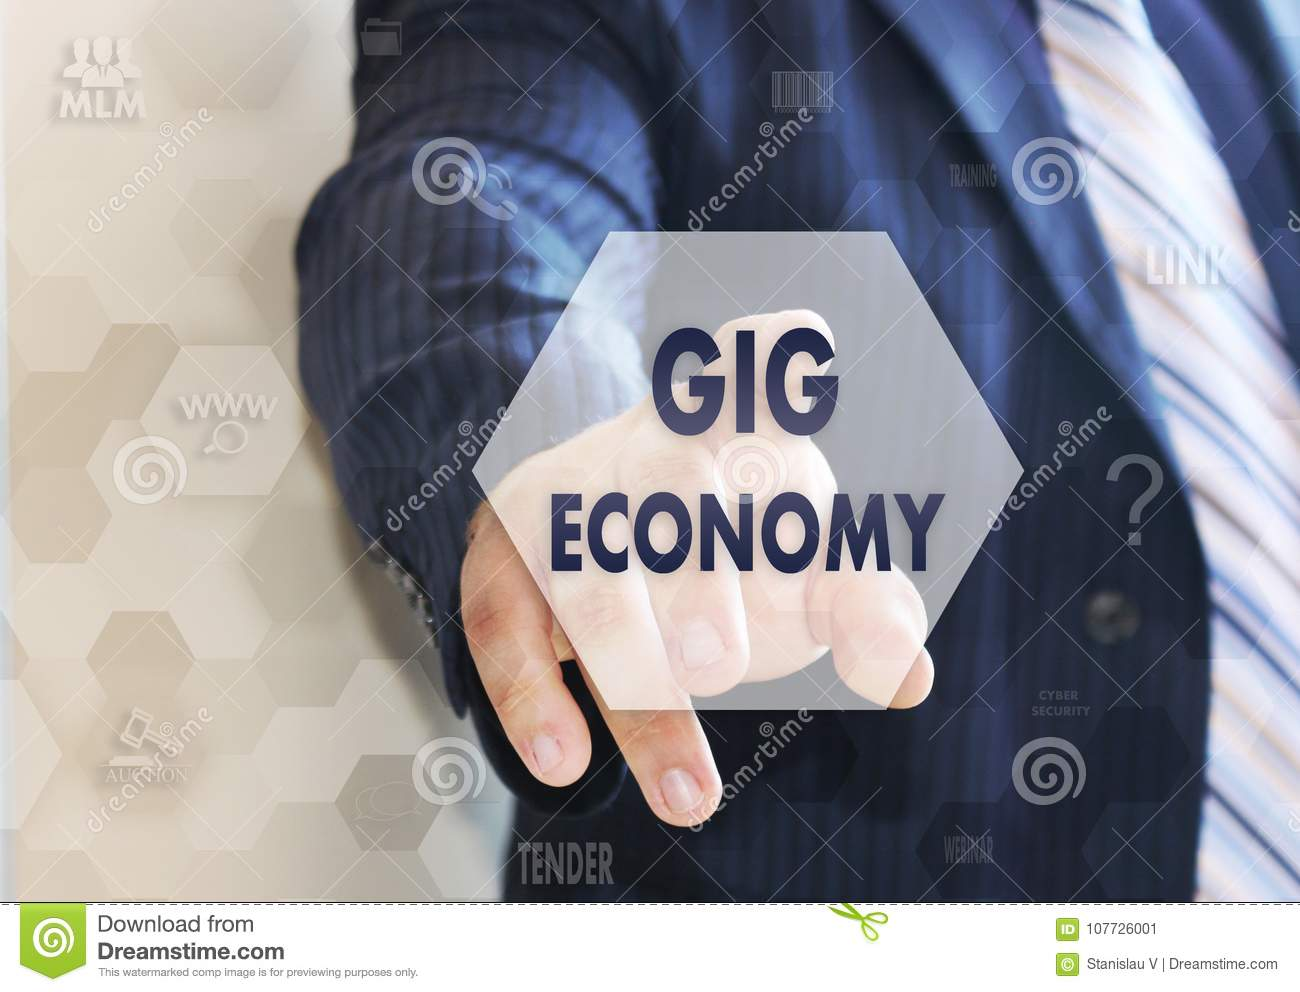 The businessman chooses the GIG ECONOMY on the touch screen